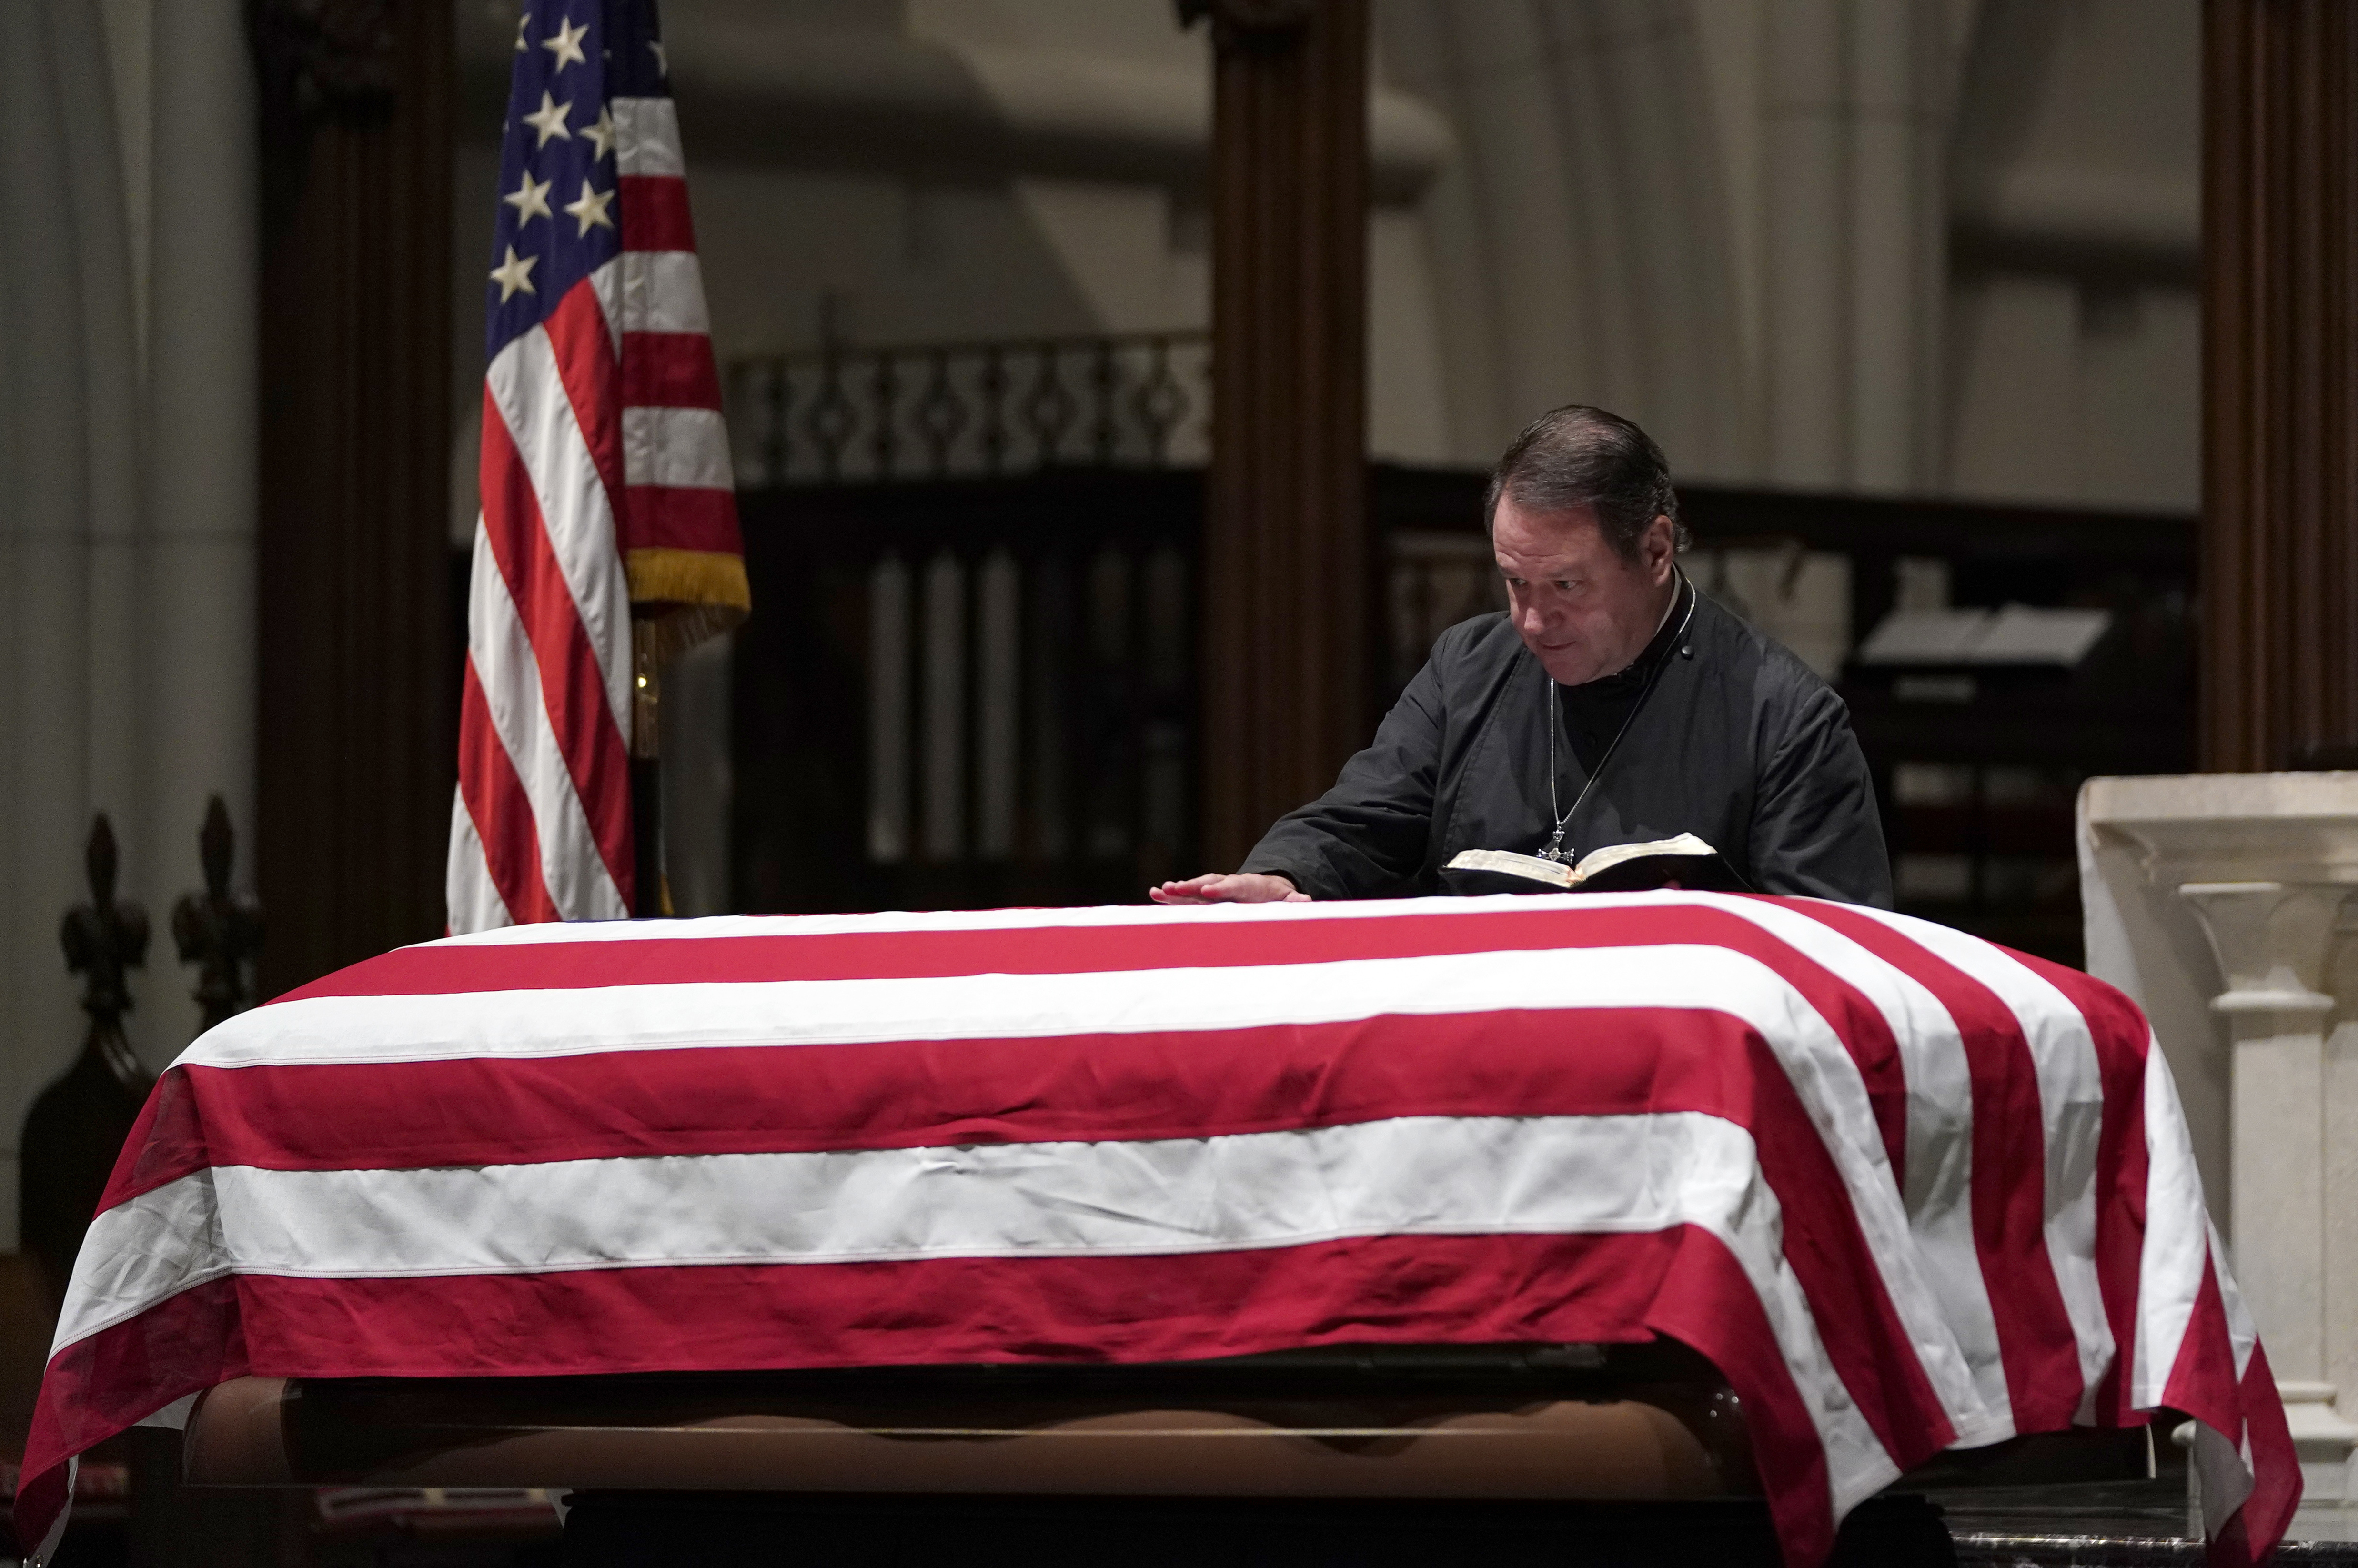 The Rev. Dr. Russell J. Levenson, Jr., rector of St. Martin's Episcopal Church, says a prayer over the casket of former President George H.W. Bush as he lies in repose at St. Martin's Episcopal Church Wednesday, Dec. 5, 2018, in Houston. (AP Photo/David J. Phillip, Pool) (AP Photo/David J. Phillip, Pool)